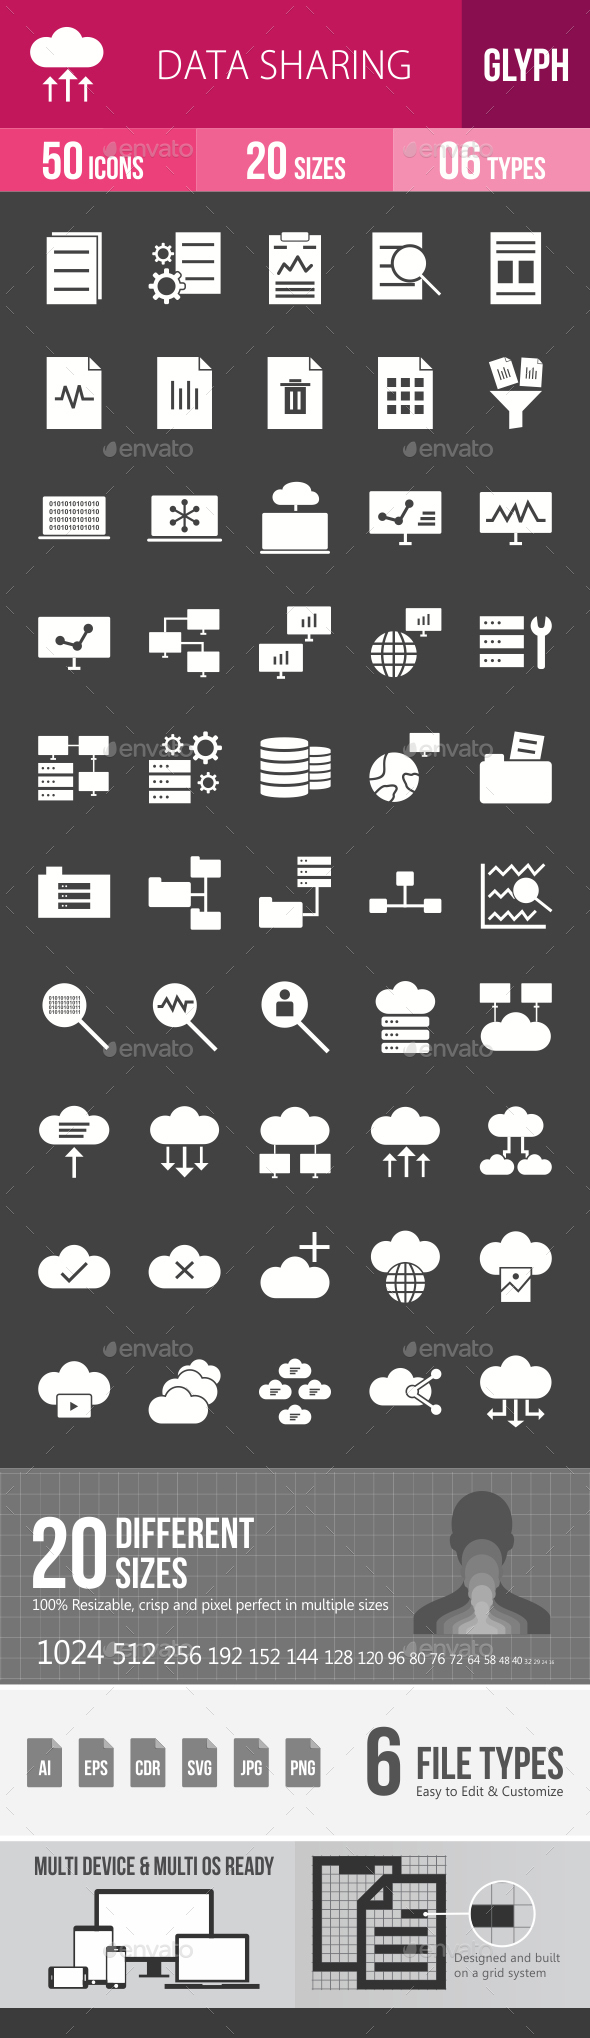 Data Sharing Glyph Inverted Icons - Icons